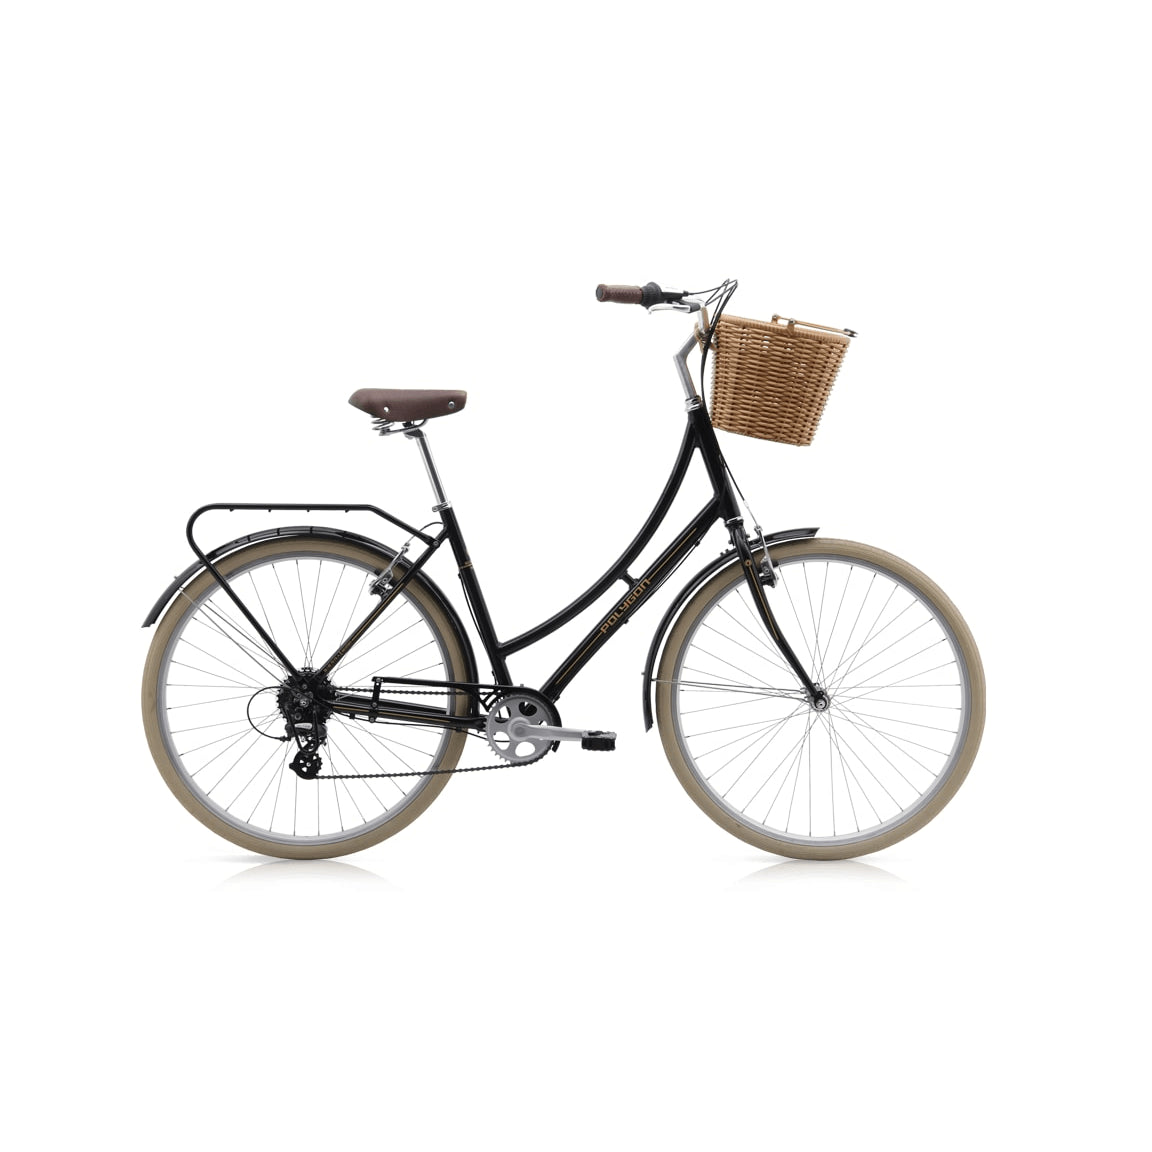 City Bike 700c POLYGON Sierra Oosten